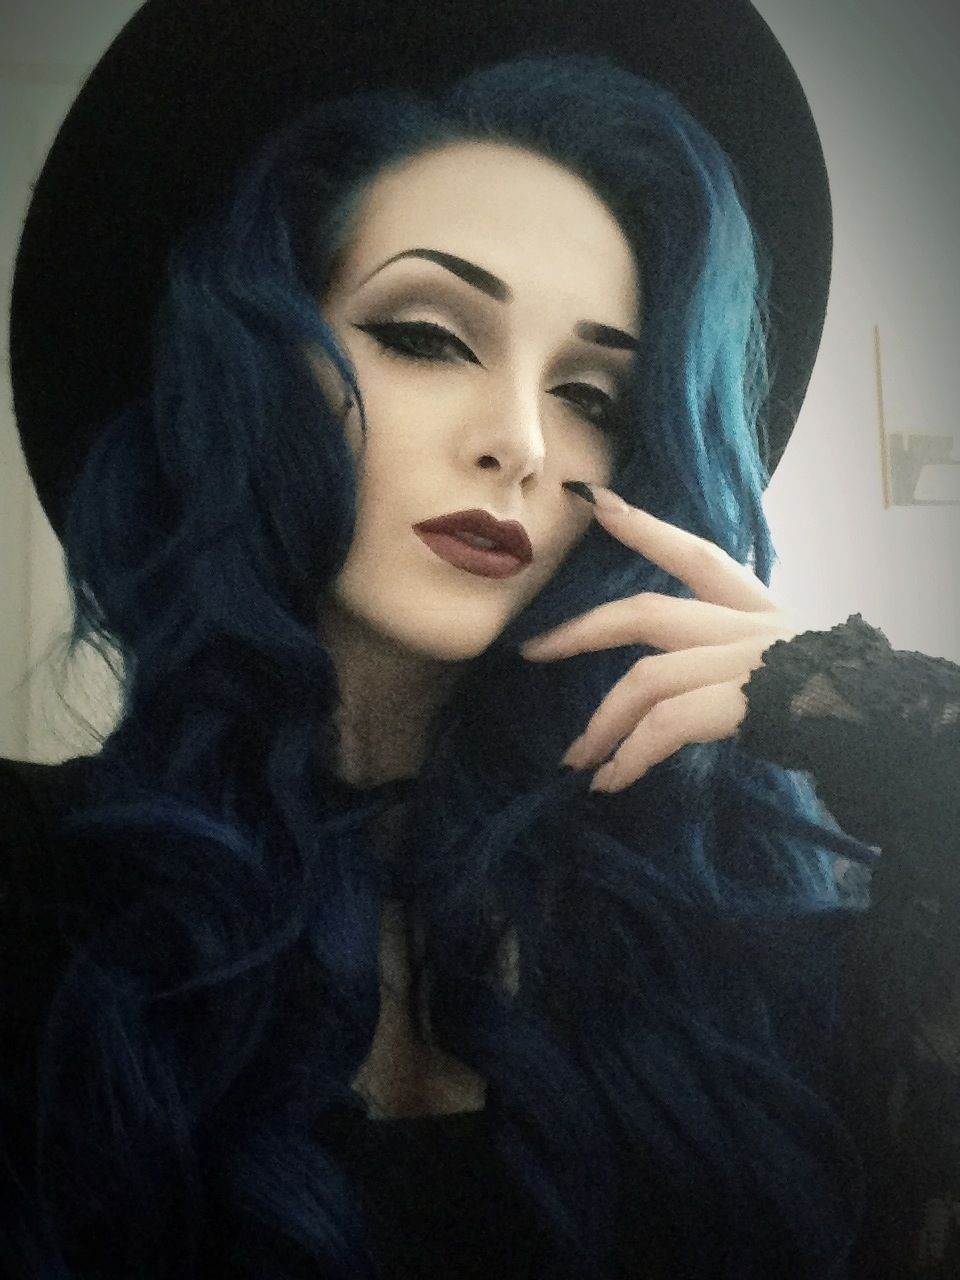 Darkdarkdark Makeup Halloween Hair Midnight Blue Hair